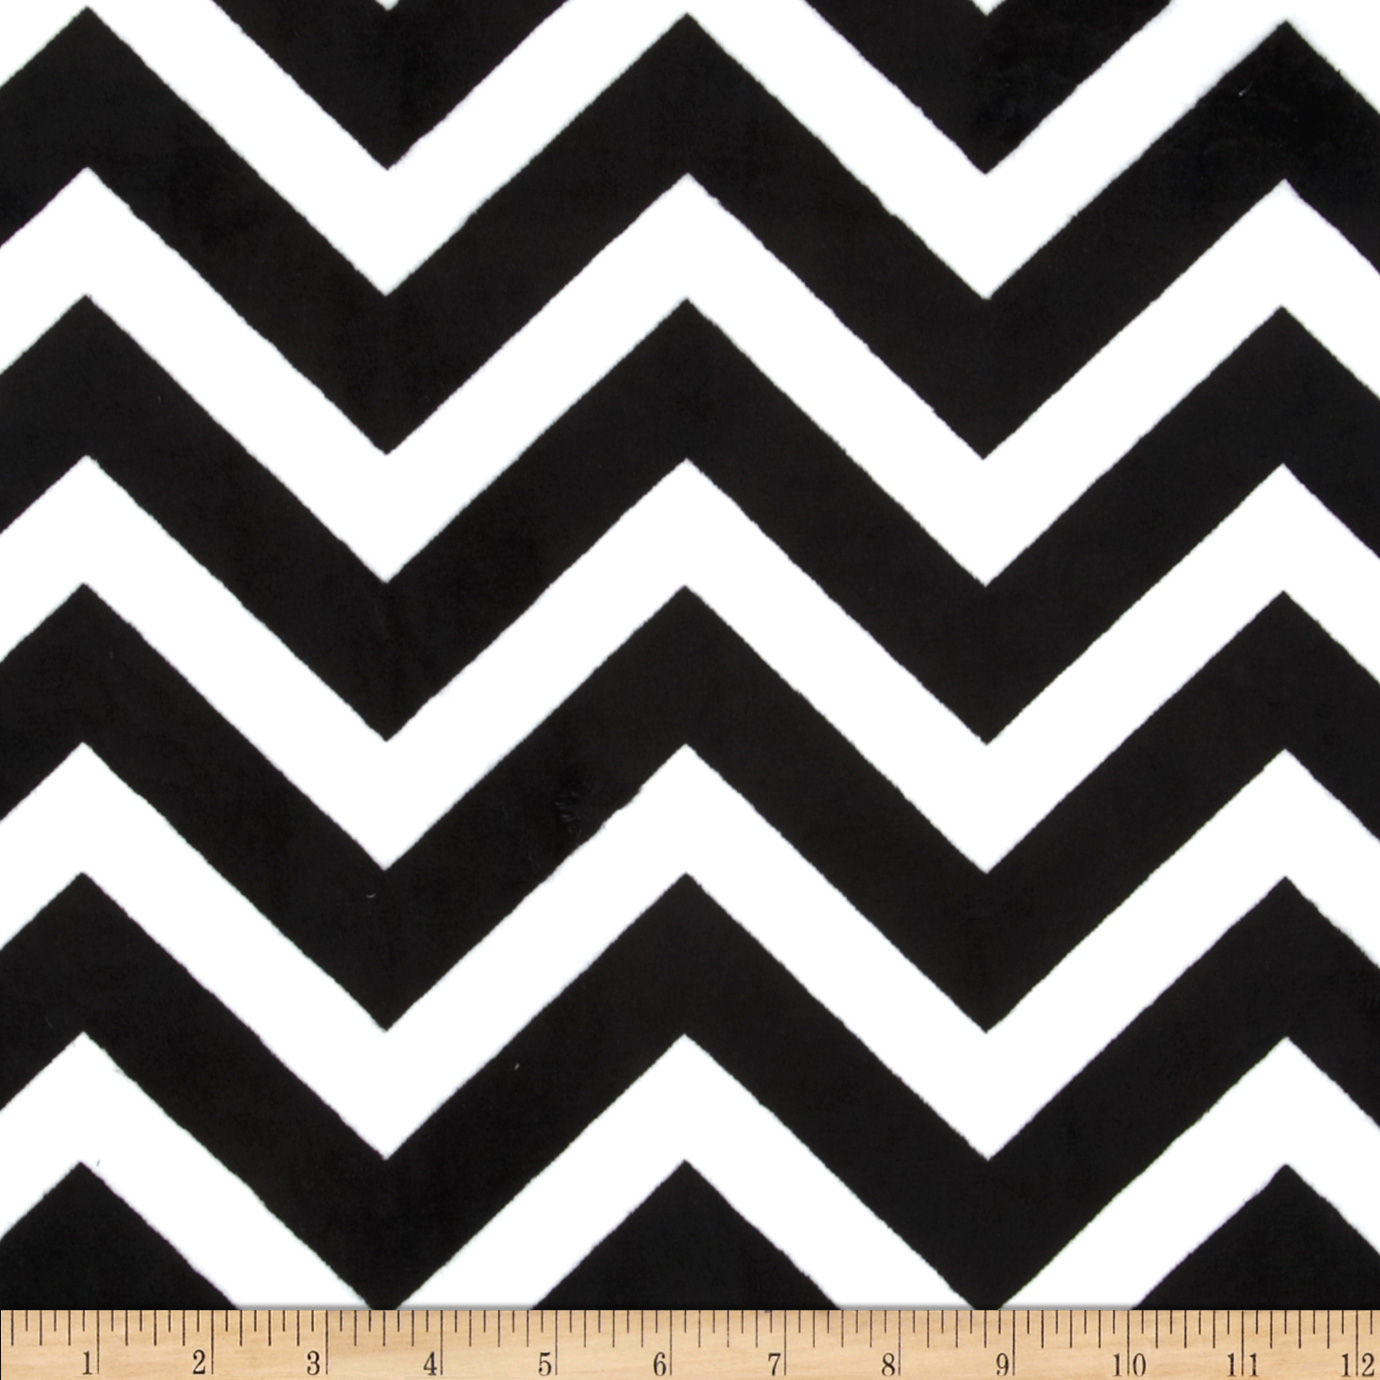 Minky Cuddle Chevron Black/Snow Fabric